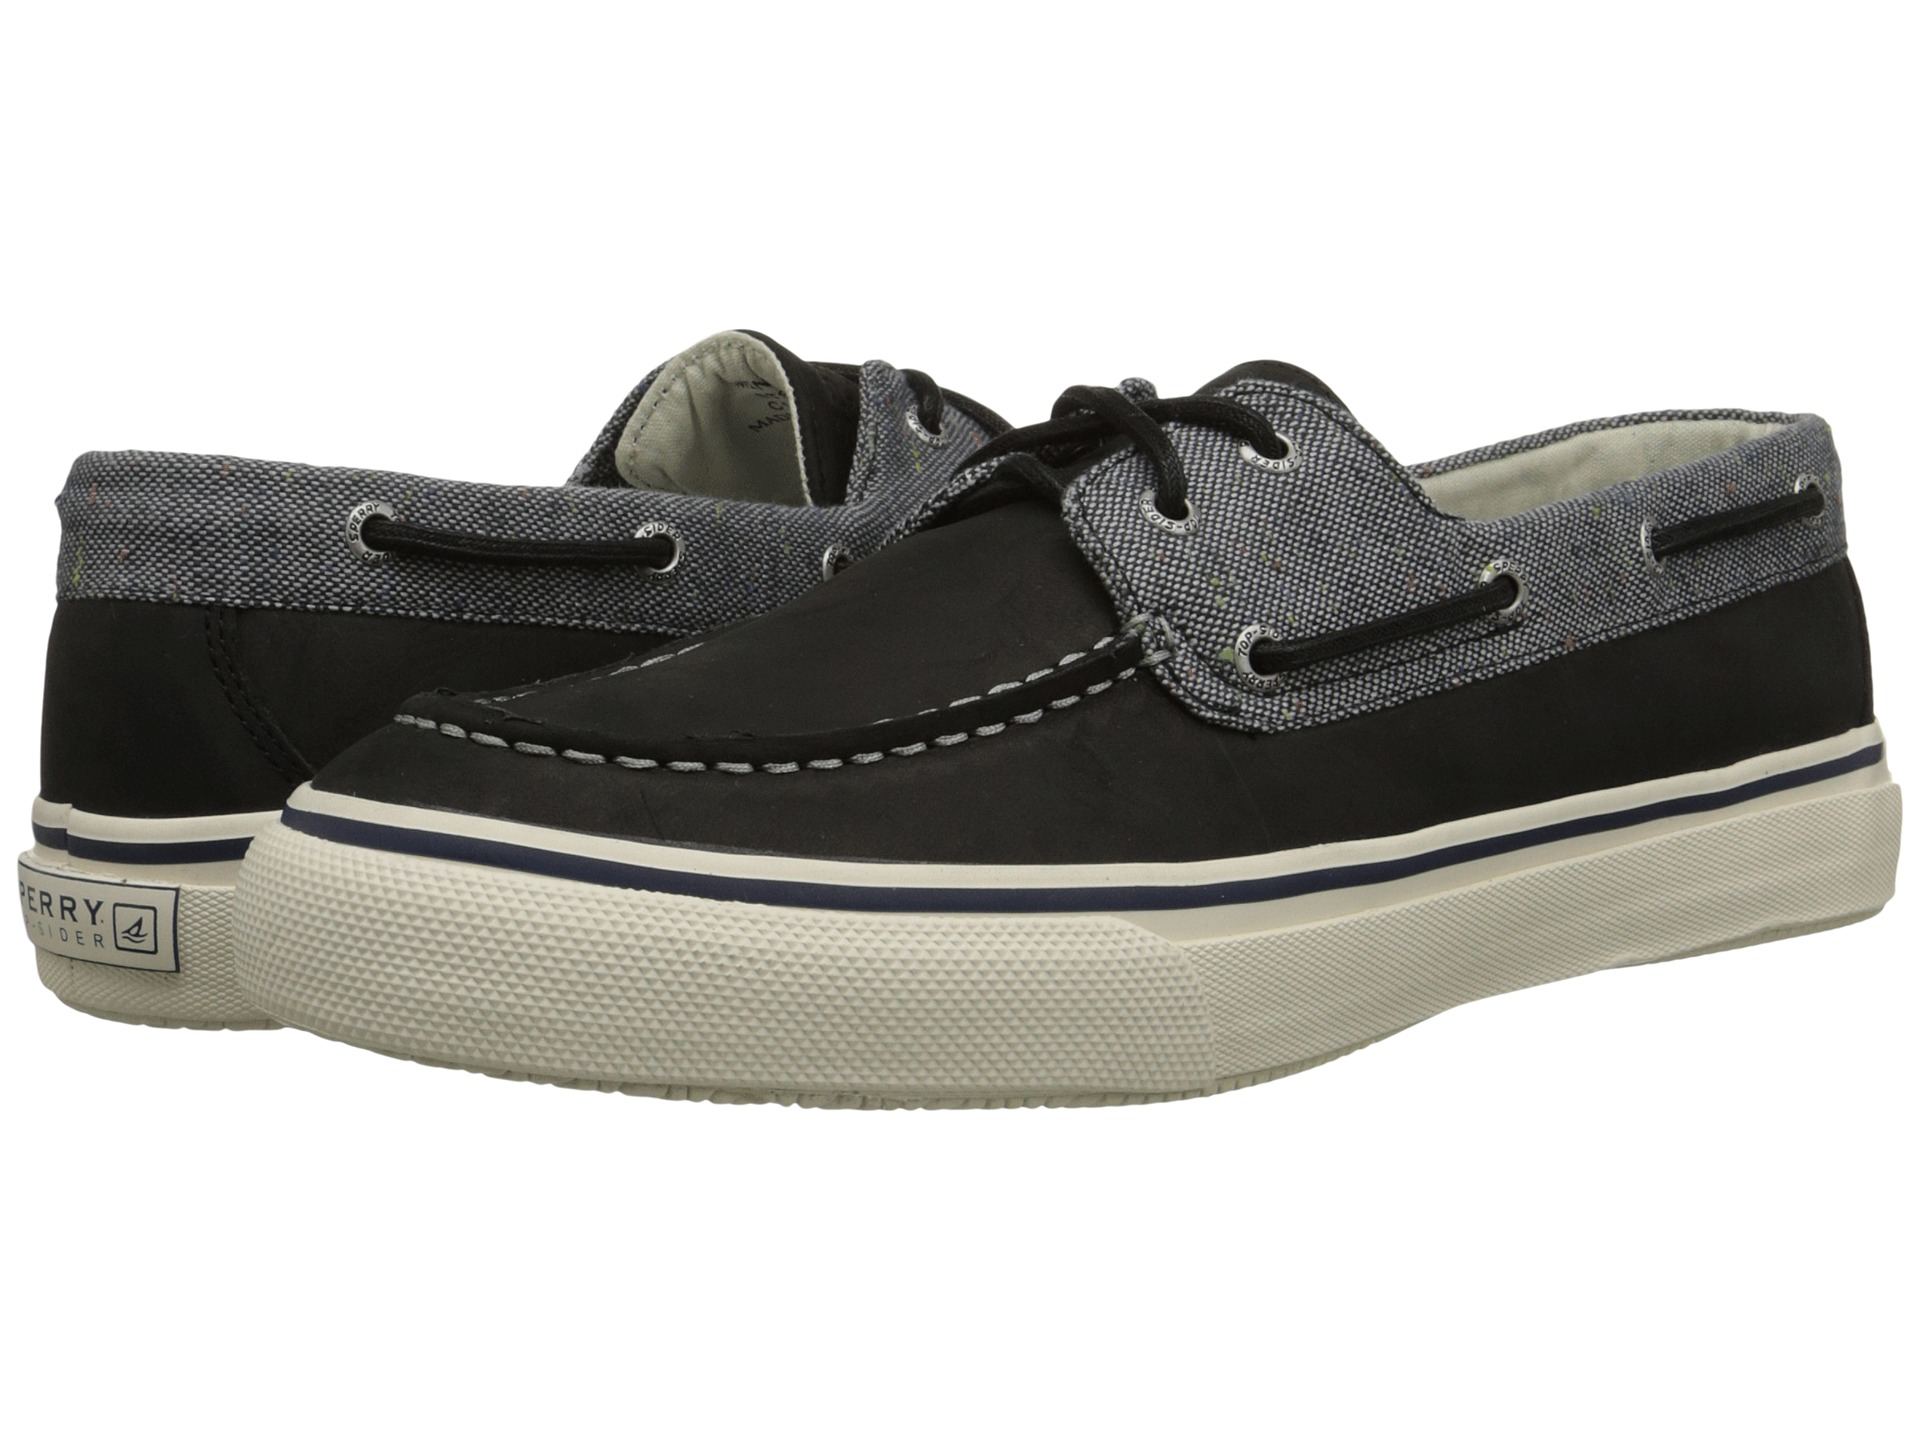 Sperry Bahama  Eye Canvas Leather Boat Shoe